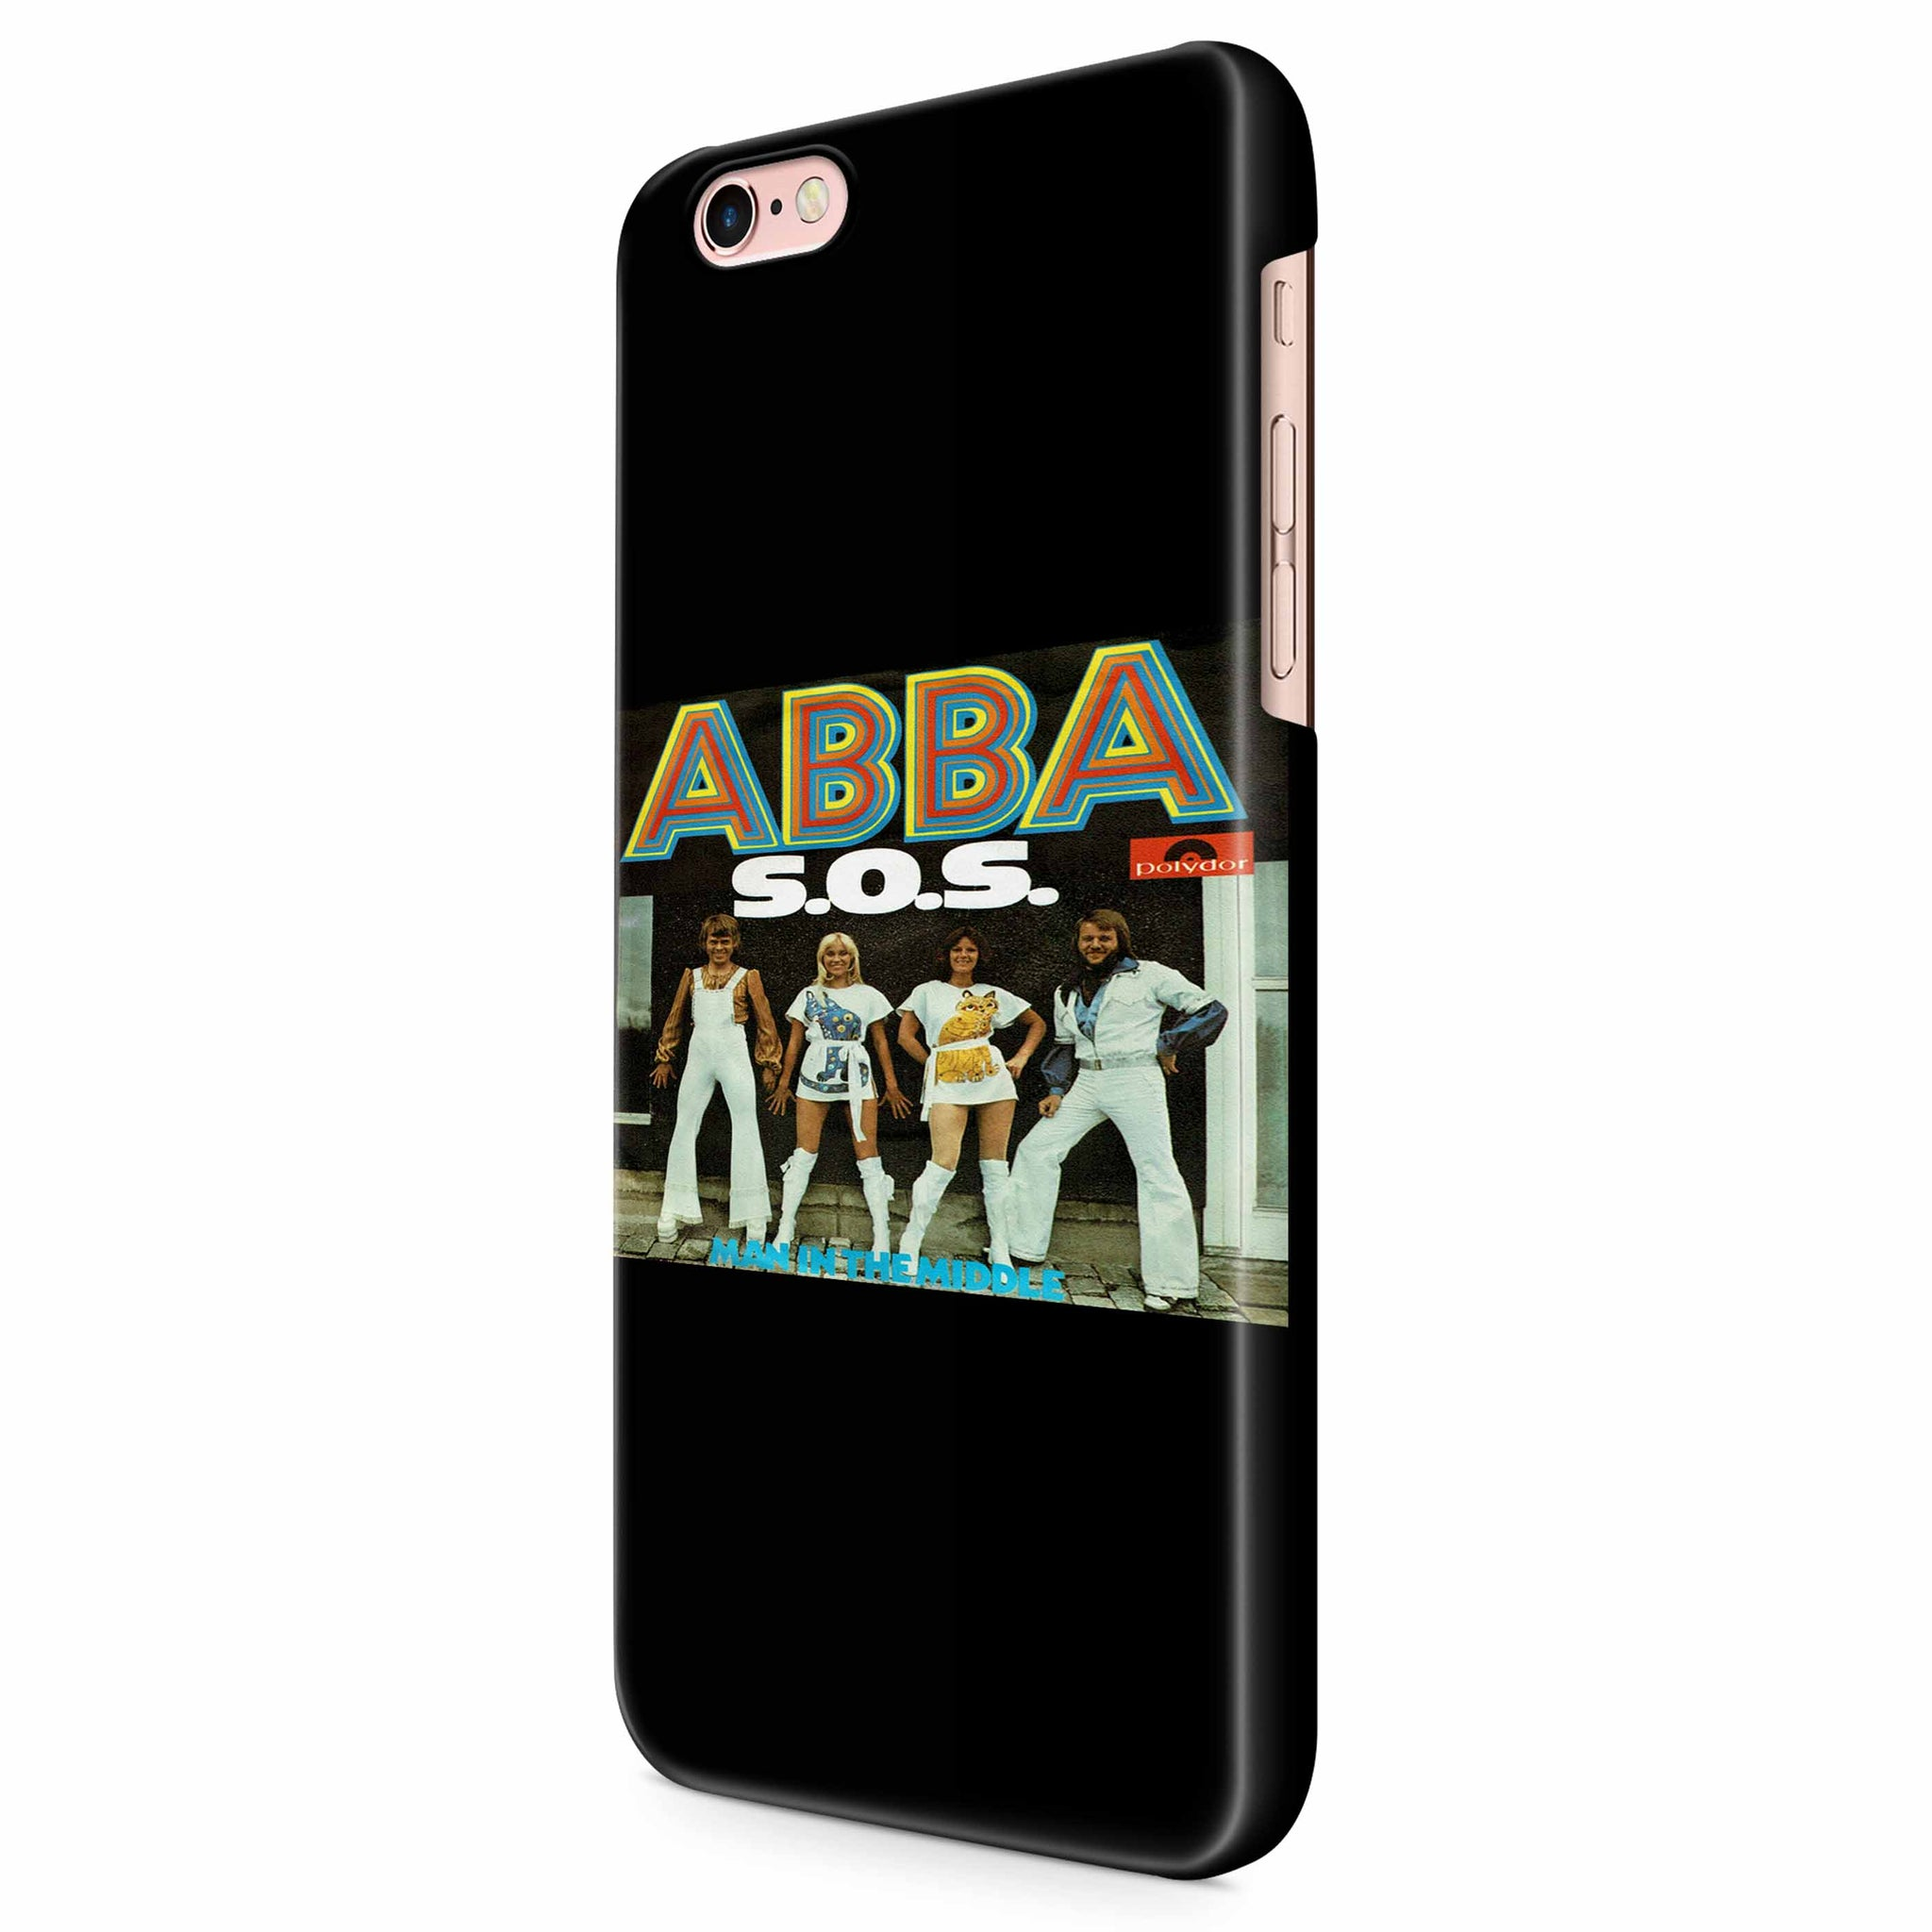 Abba Sos Cover iPhone 6/6S/6S Plus | 7/7S/7S Plus | 8/8S/8S Plus| X/XS/XR/XS Max 3D Case